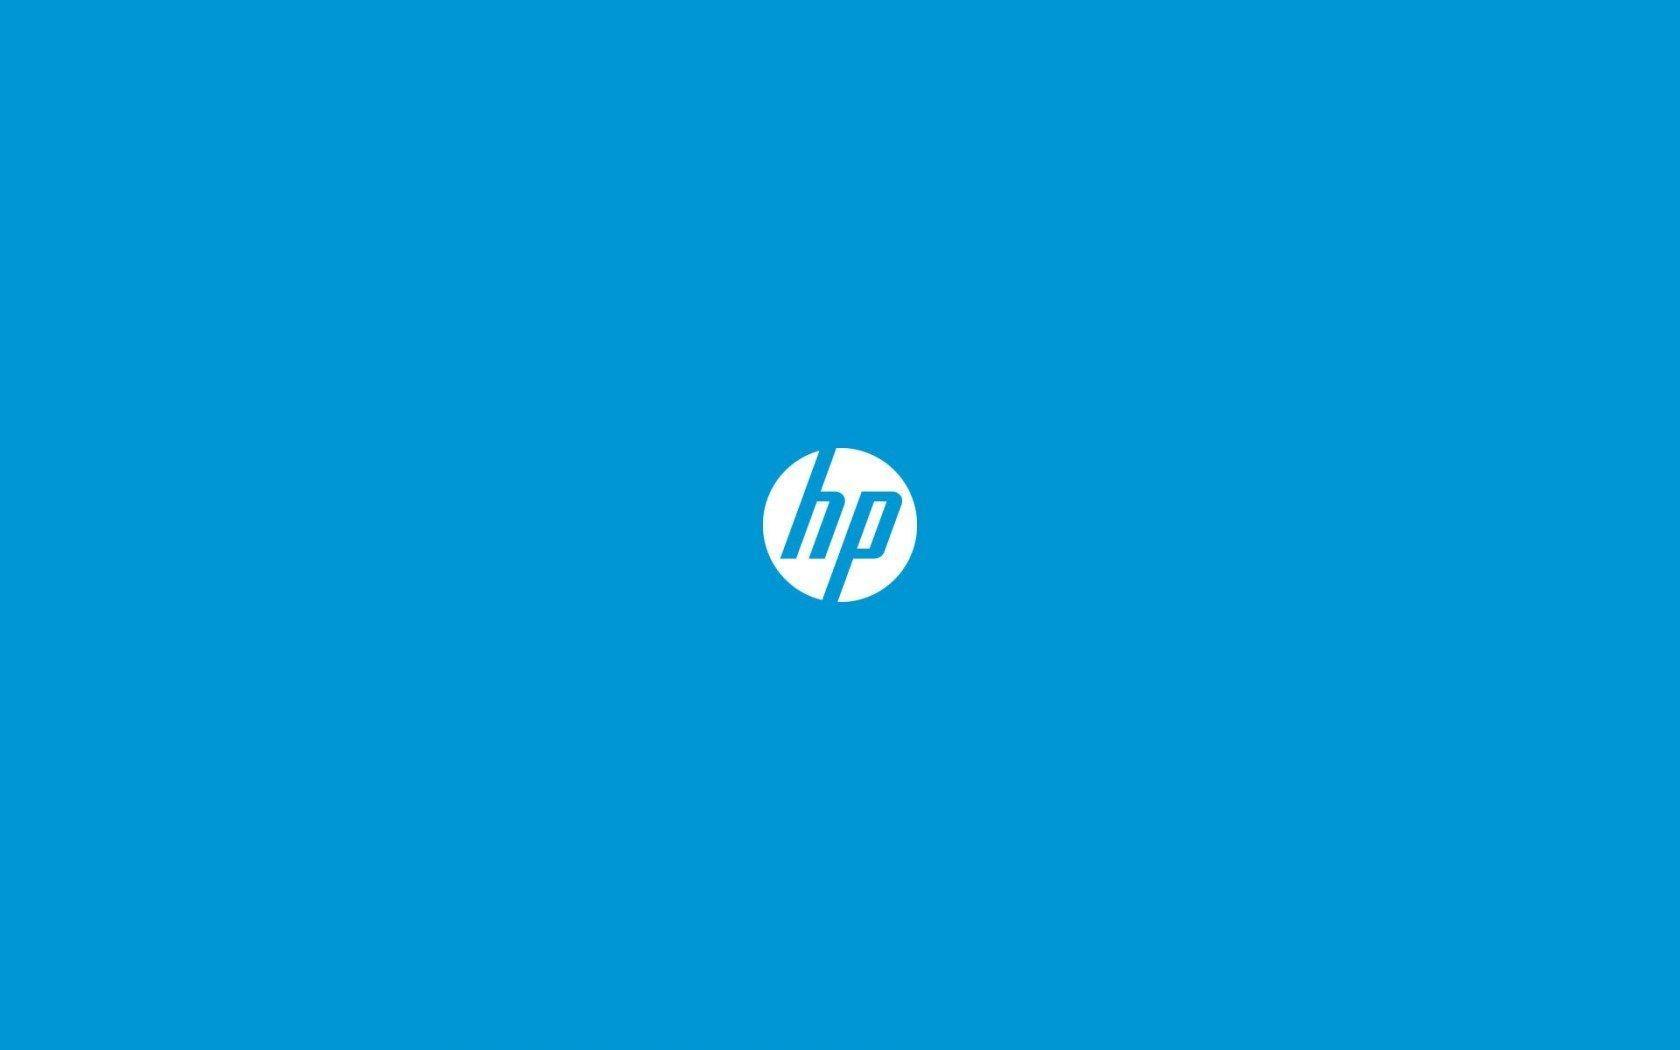 hp wallpapers 2015 wallpaper cave